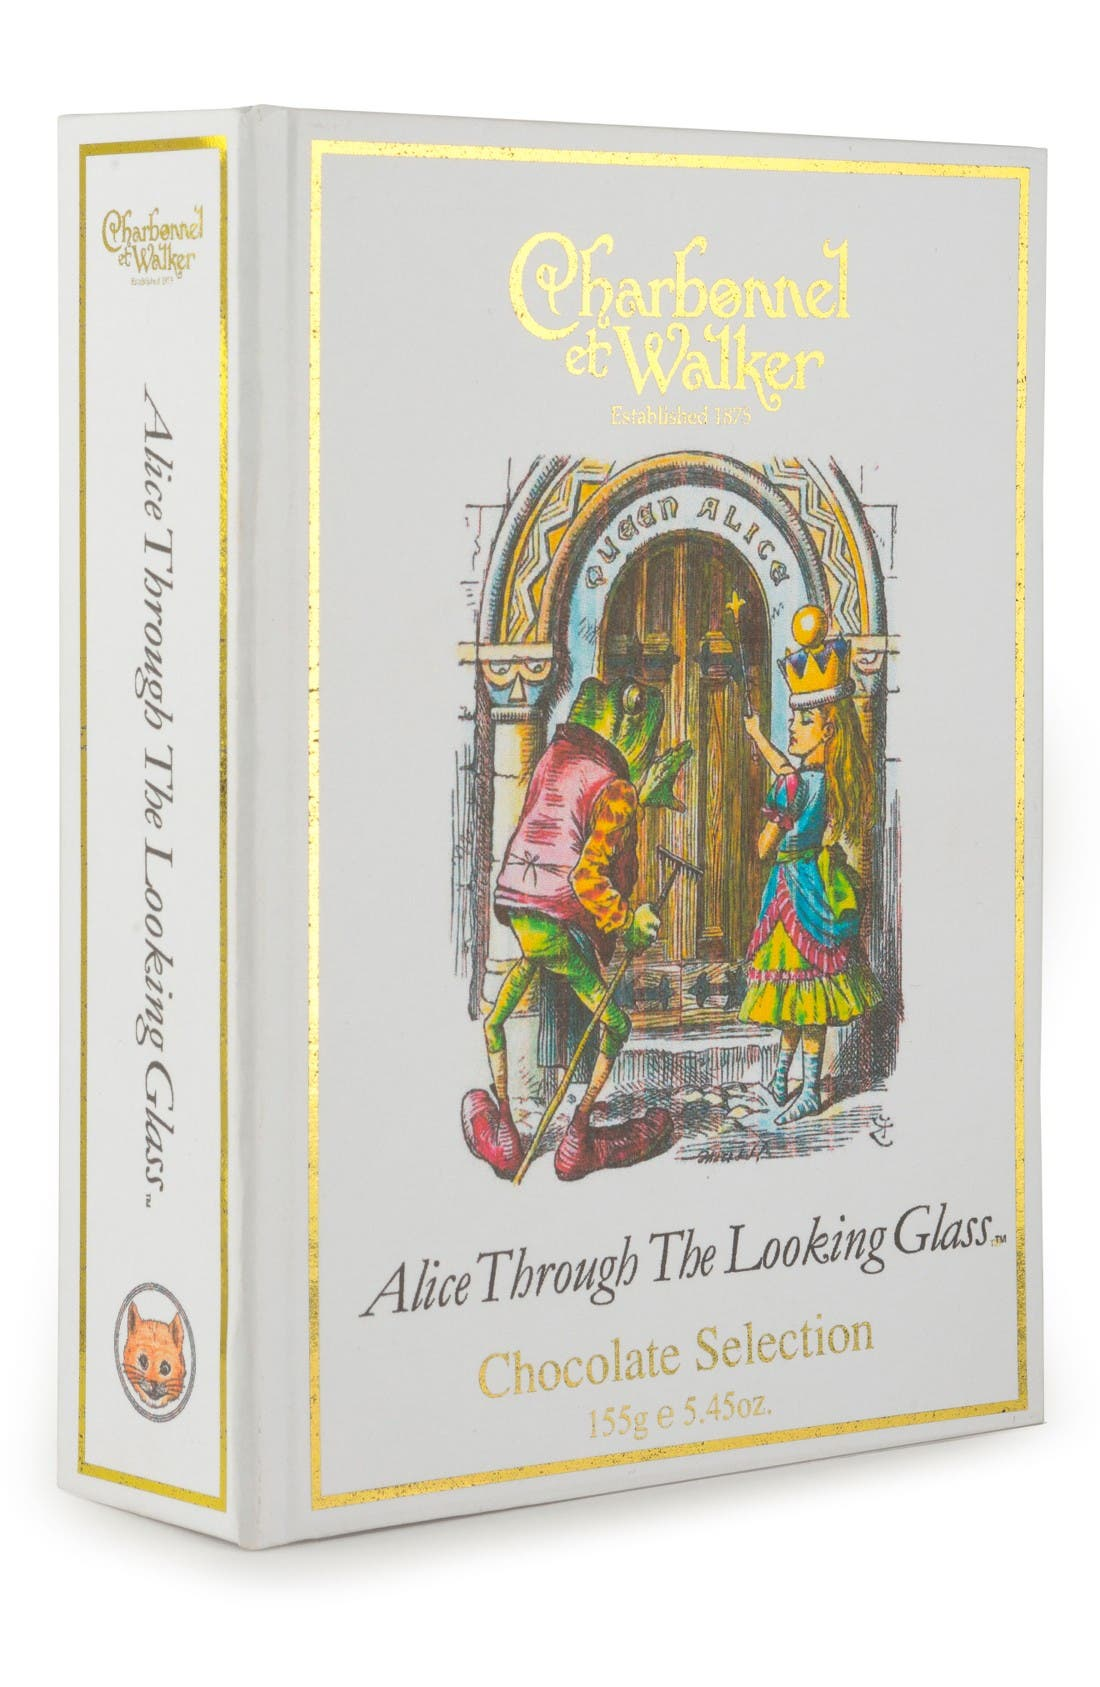 Alternate Image 3  - Charbonnel et Walker Fine Chocolate Selection in Alice Through the Looking Glass Gift Box